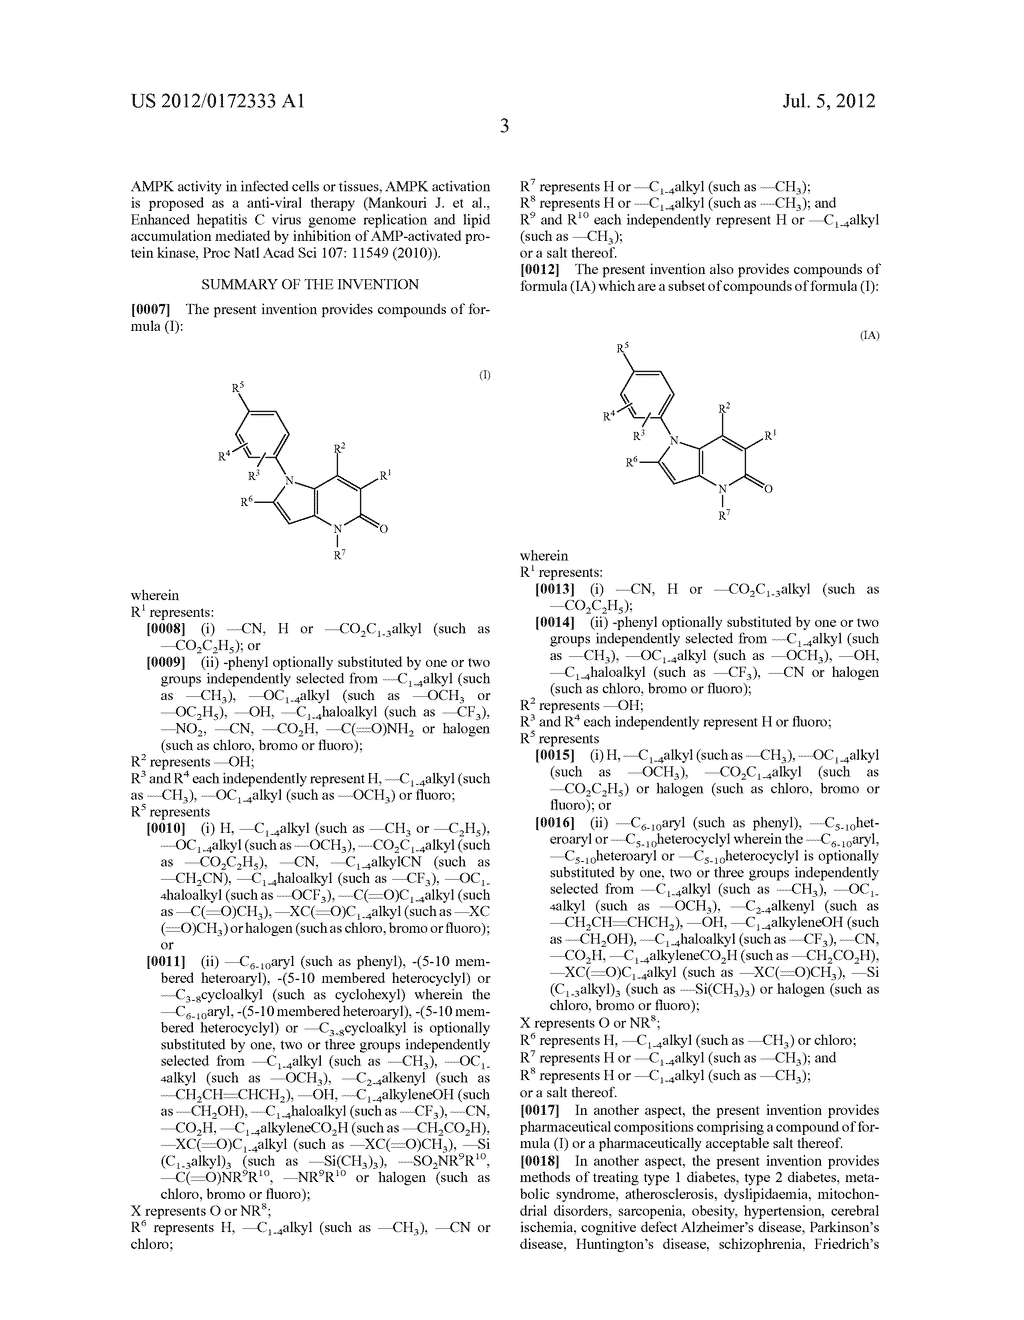 PYRROLO-PYRIDINE DERIVATIVES AS ACTIVATORS OF AMPK - diagram, schematic, and image 04